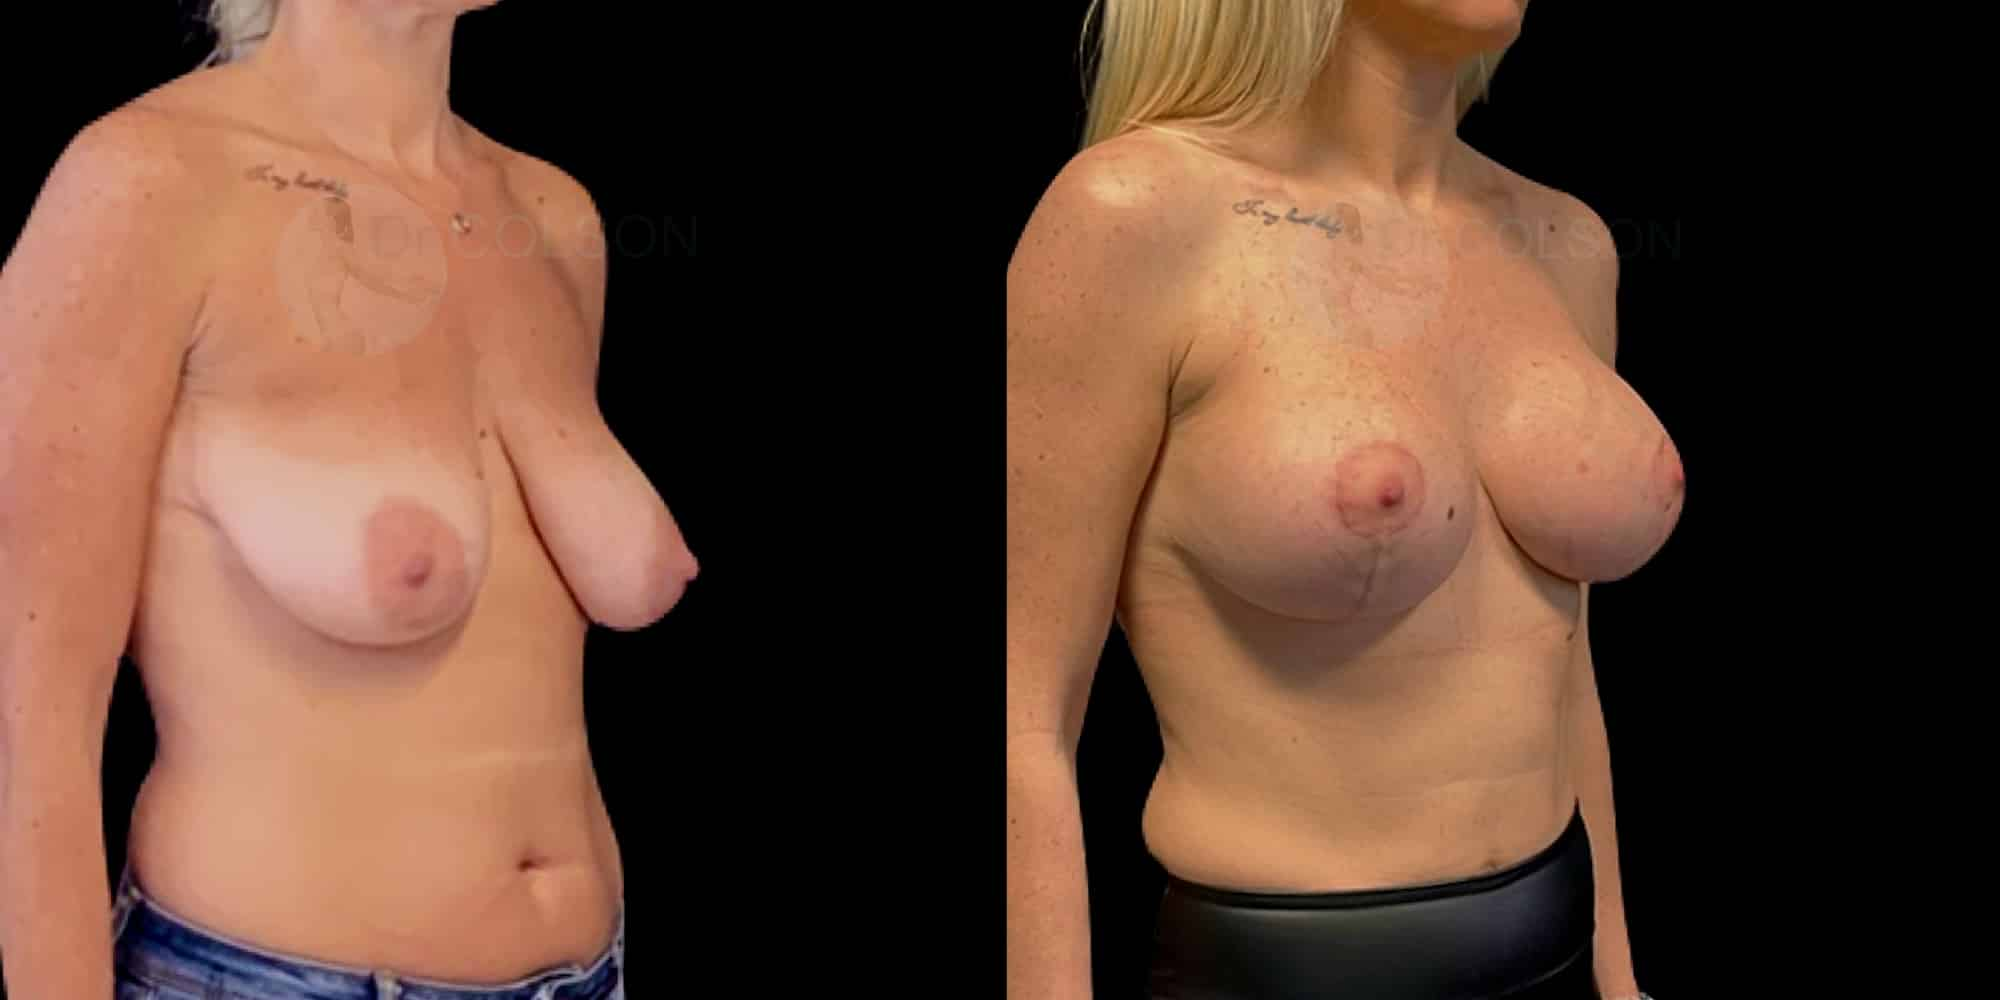 Dr Colson - Chirurgie sein - Lifting Mammaire Prothese Trois Quart